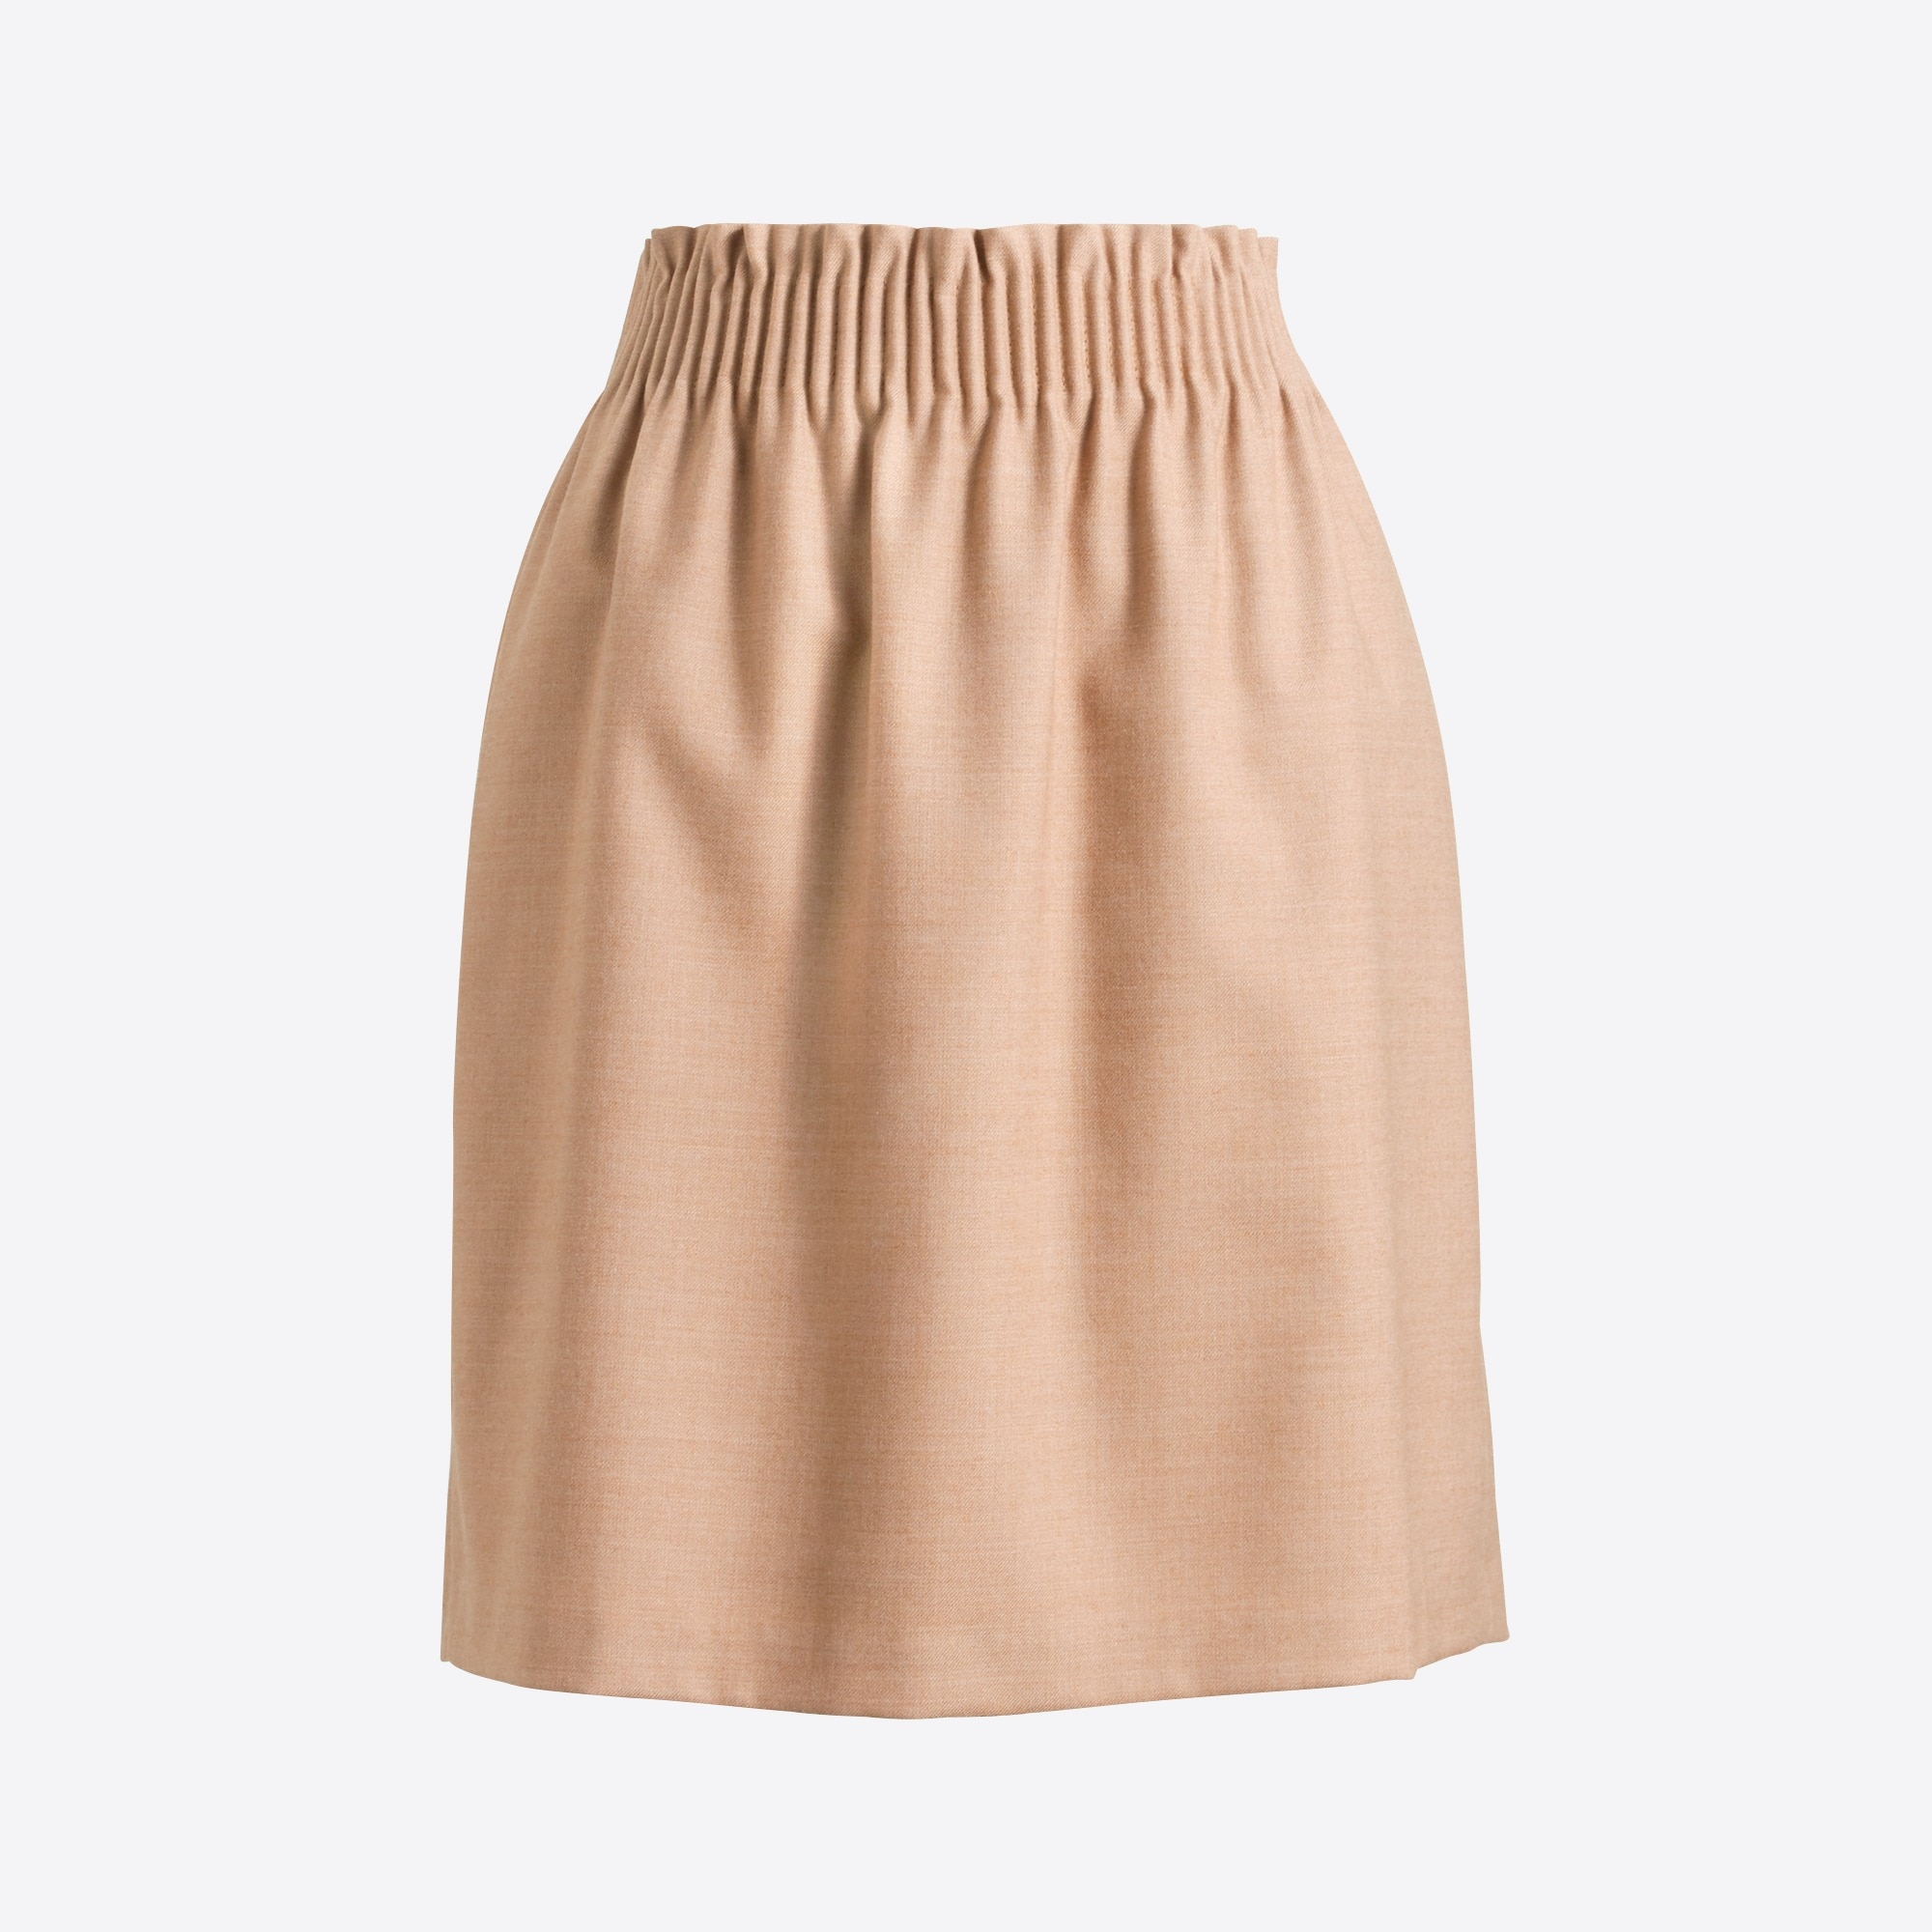 women's wool sidewalk skirt - women's skirts